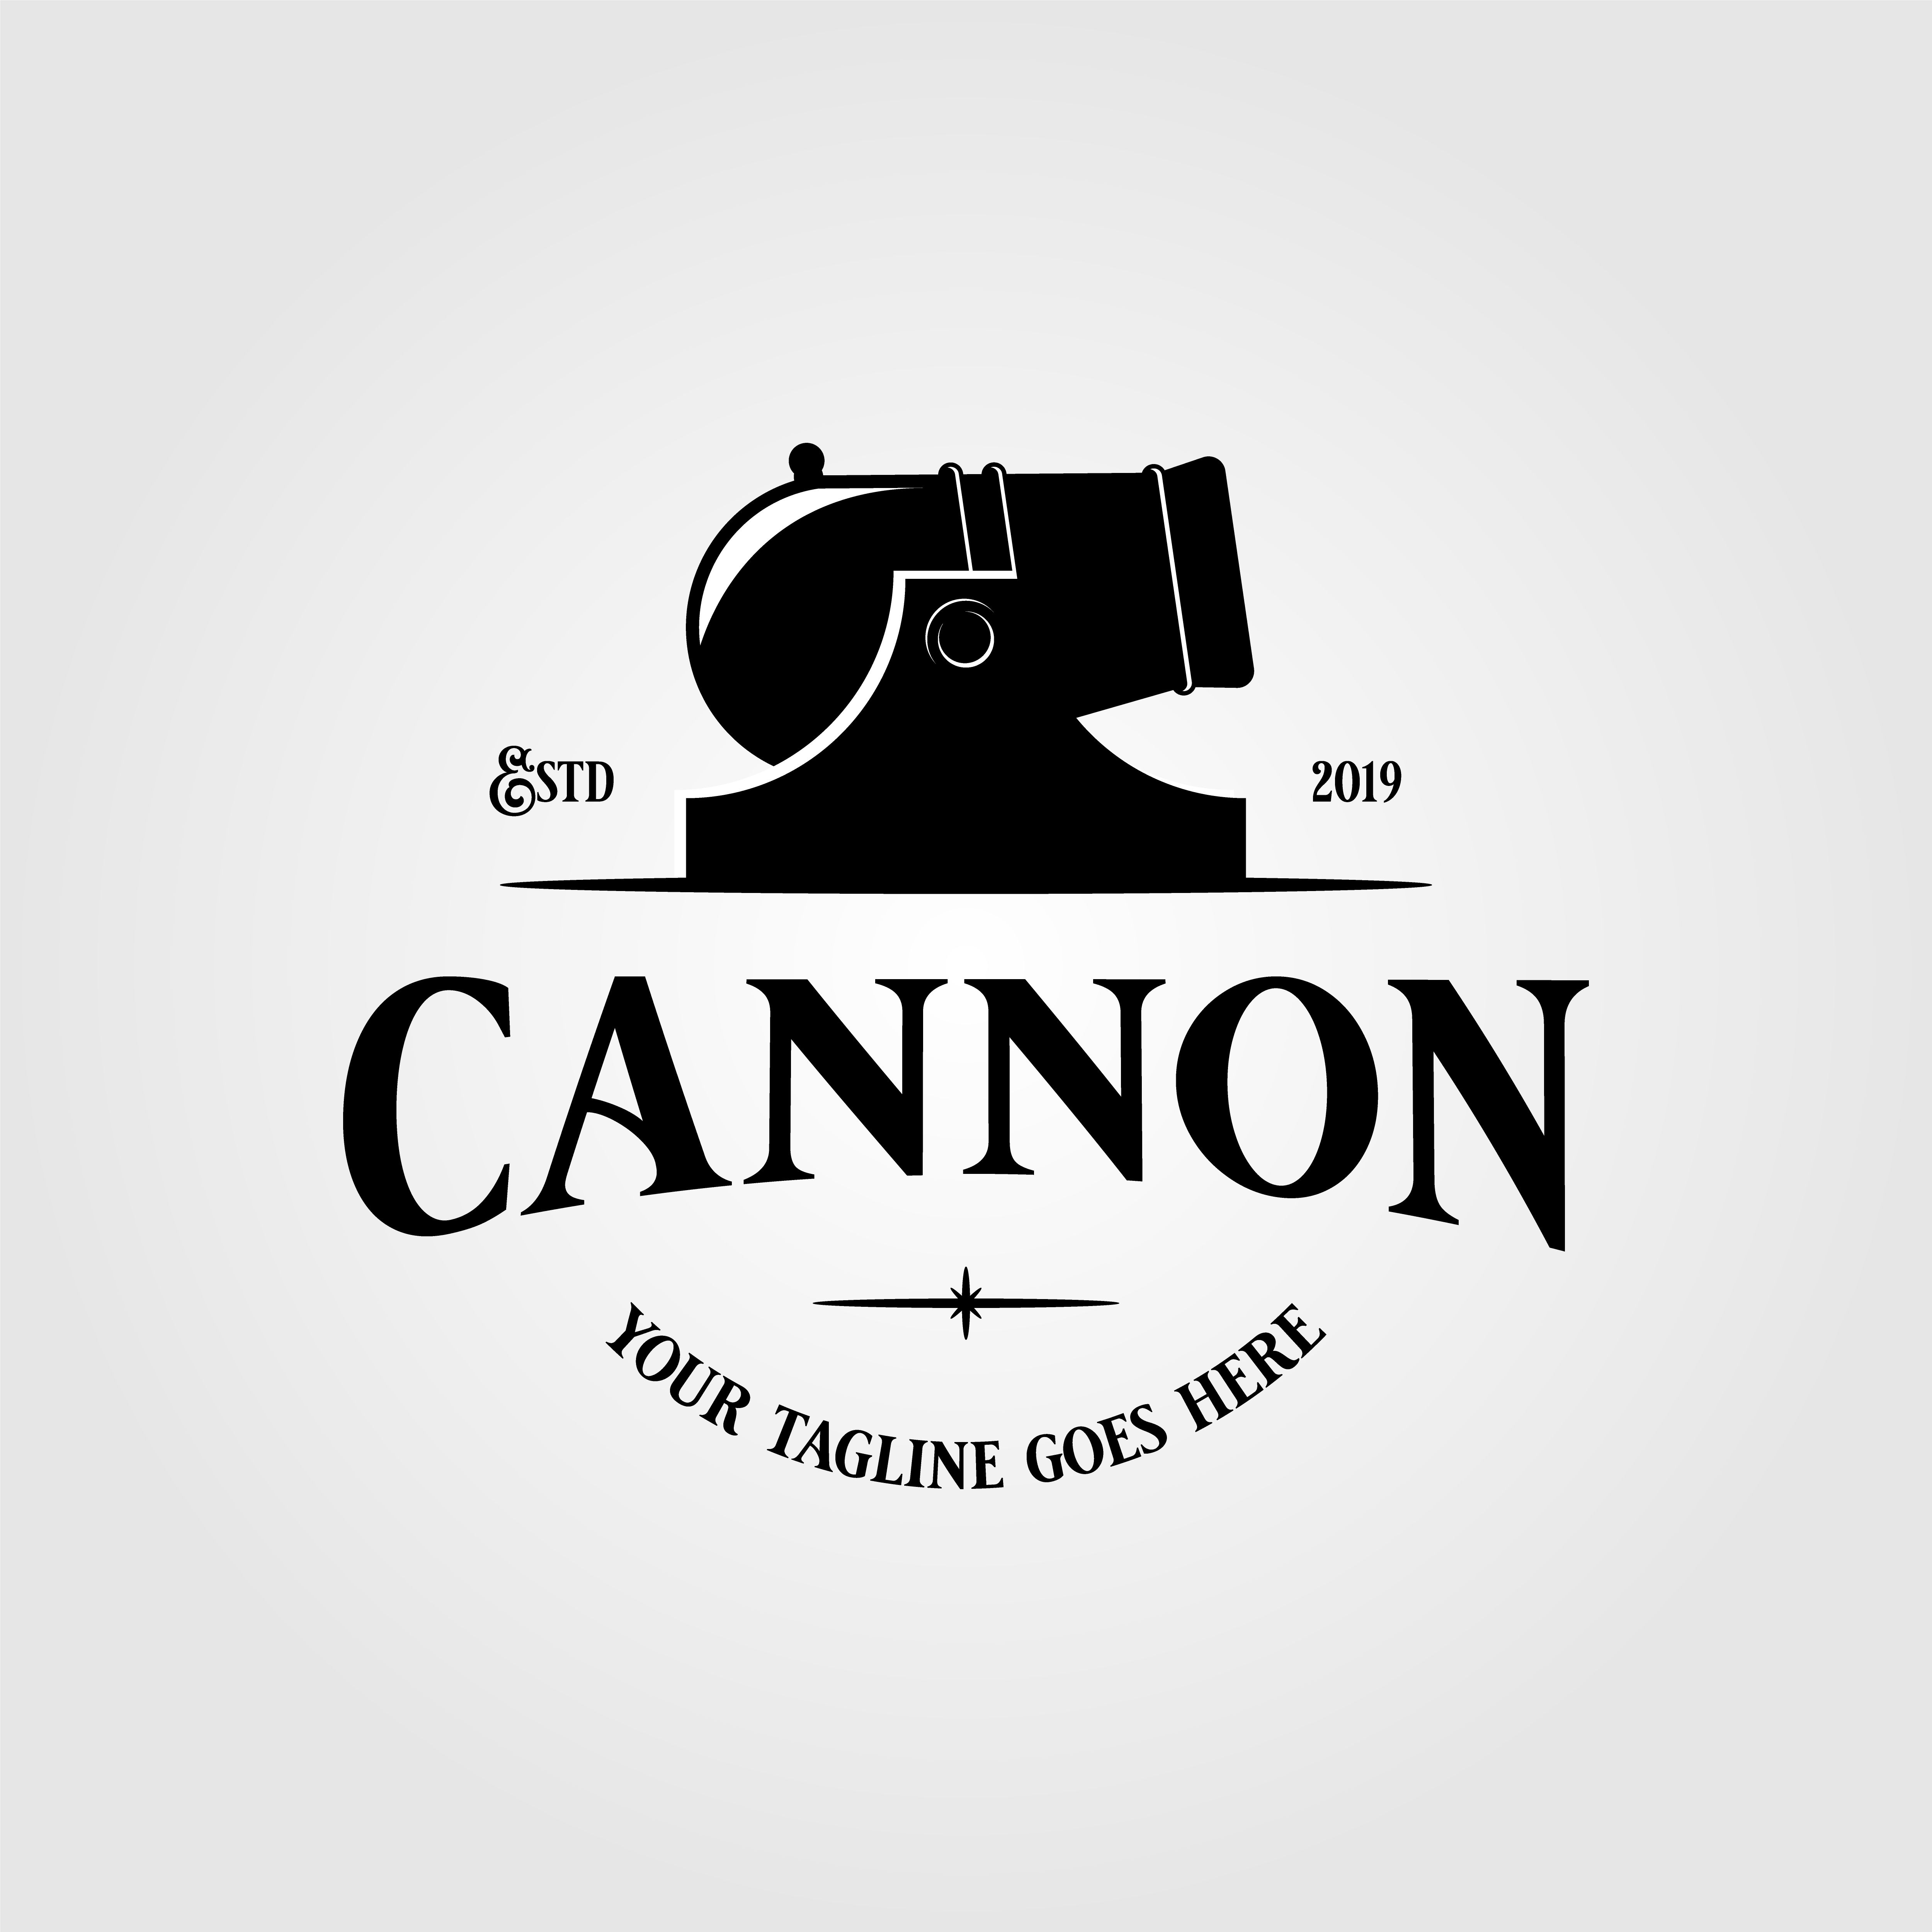 Cannon icon vector isolated on white background for your